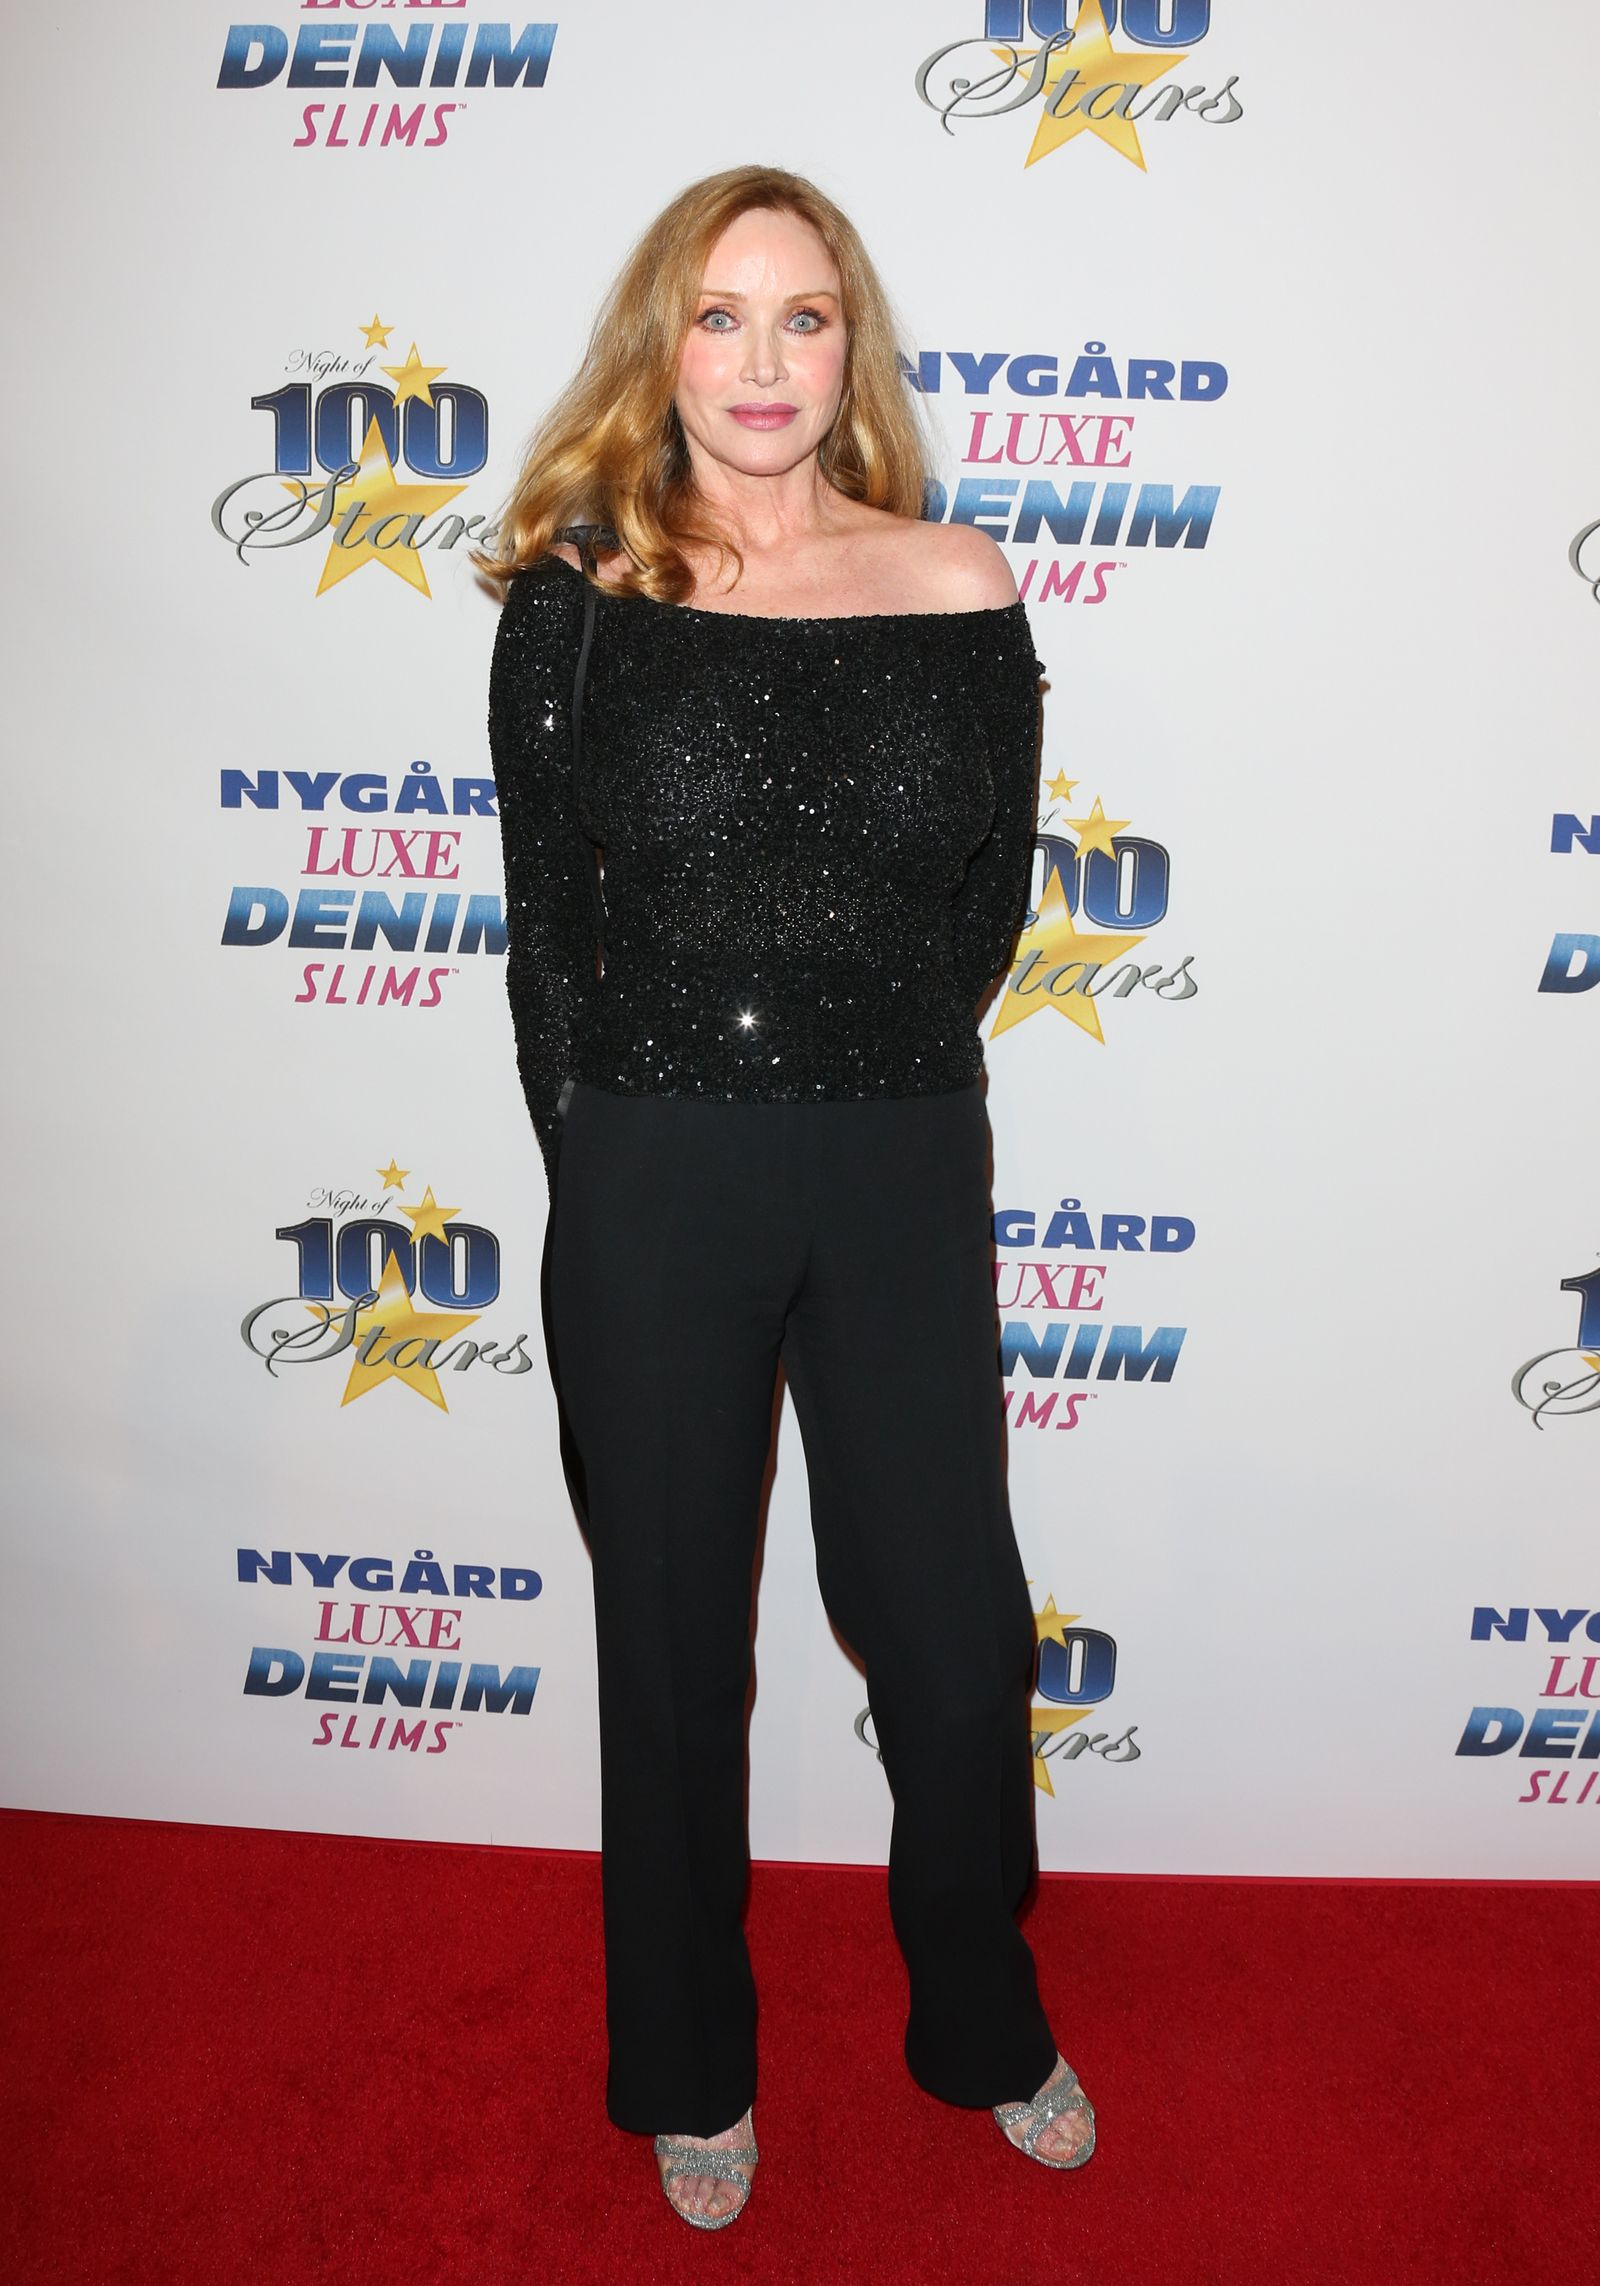 27th Annual Night Of 100 Stars Black Tie Dinner Viewing Gala - Arrivals